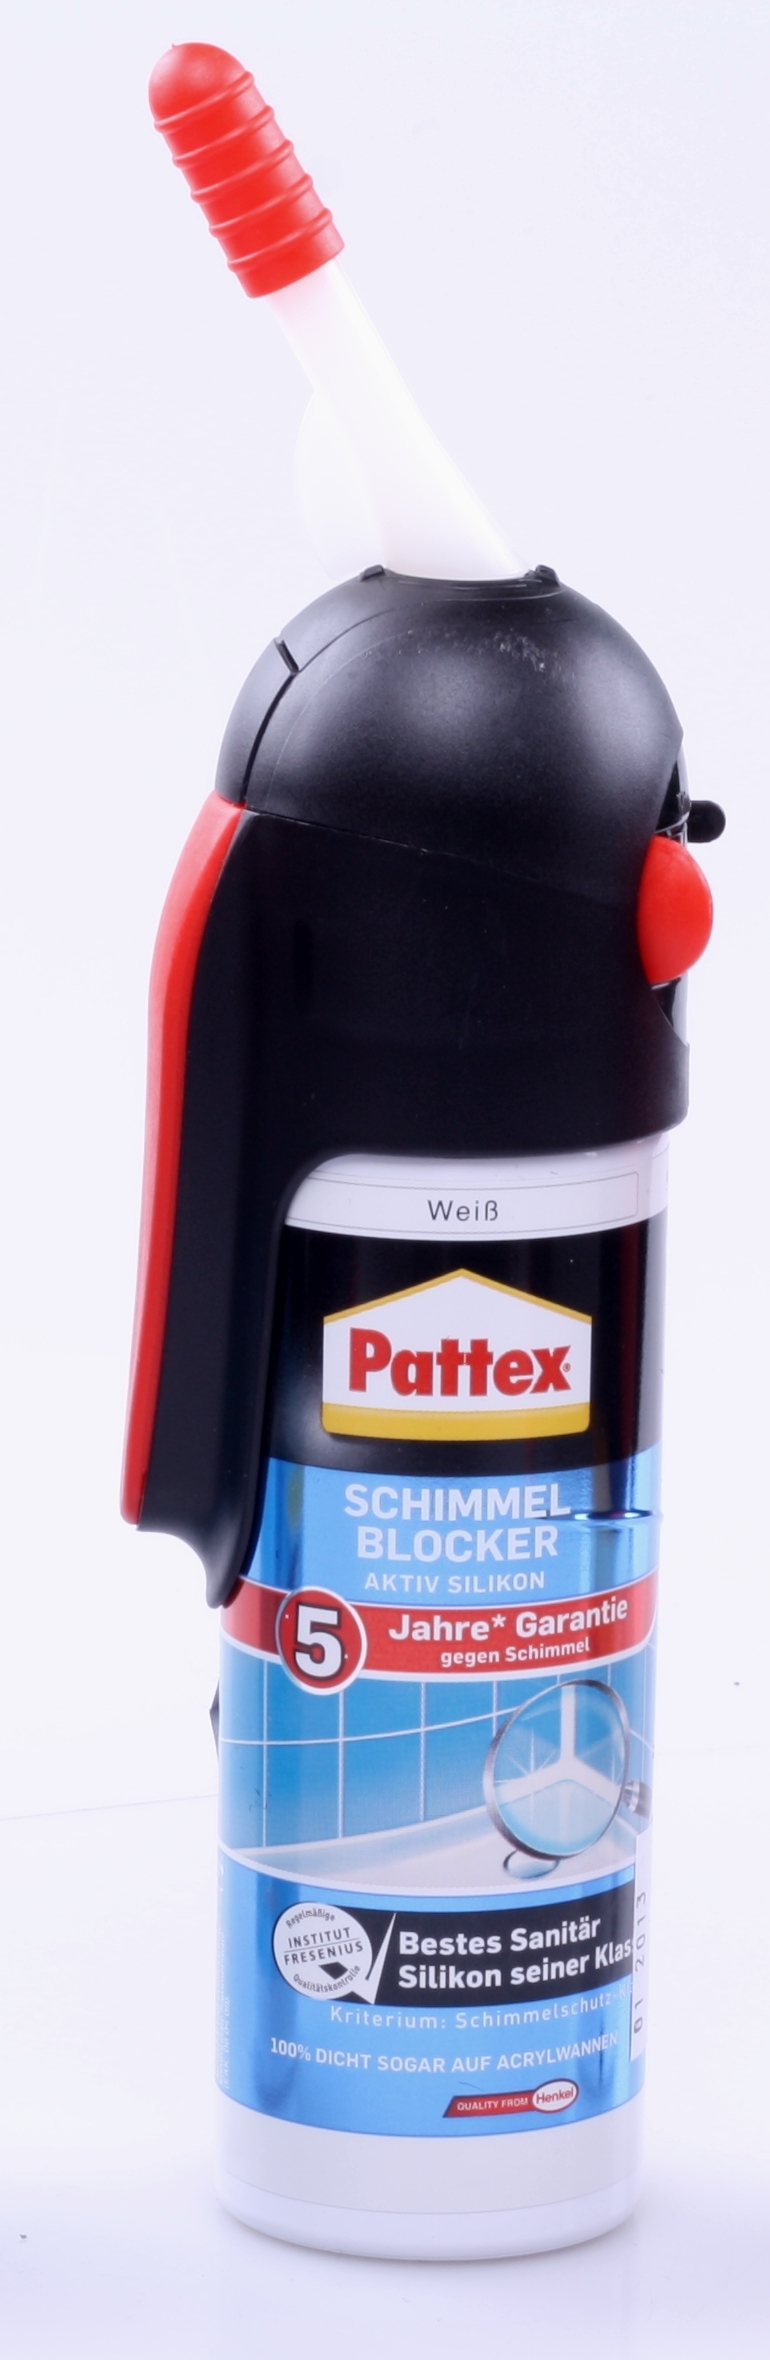 pattex schimmelblocker aktiv silikon silicon anti schimmel wei 100ml ebay. Black Bedroom Furniture Sets. Home Design Ideas